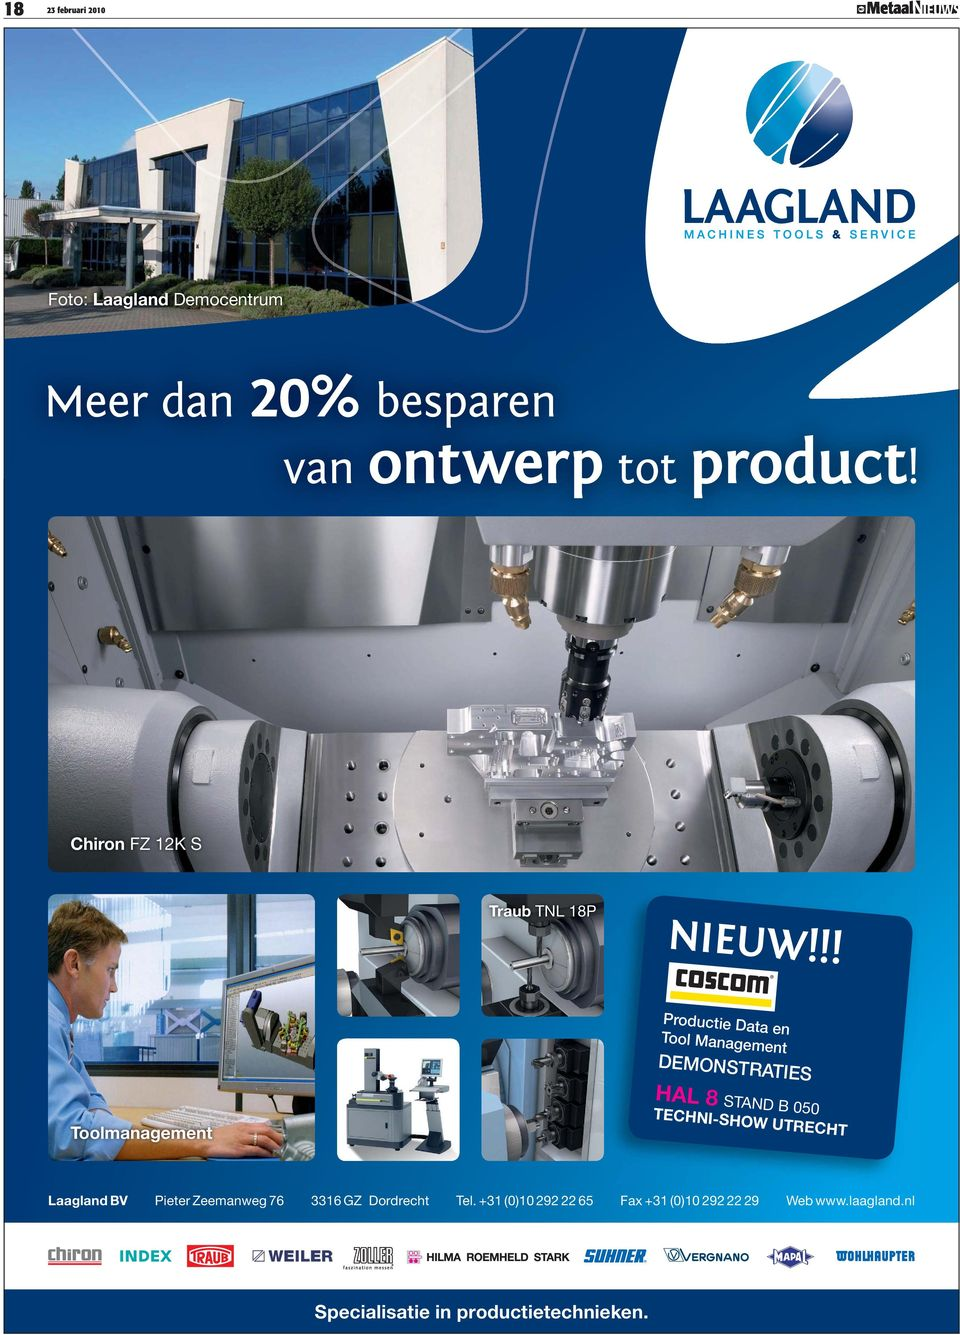 !! Productie Data en Tool Management DEMONSTRATIES HAL 8 STAND B 050 Toolmanagement TECHNI-SHOW